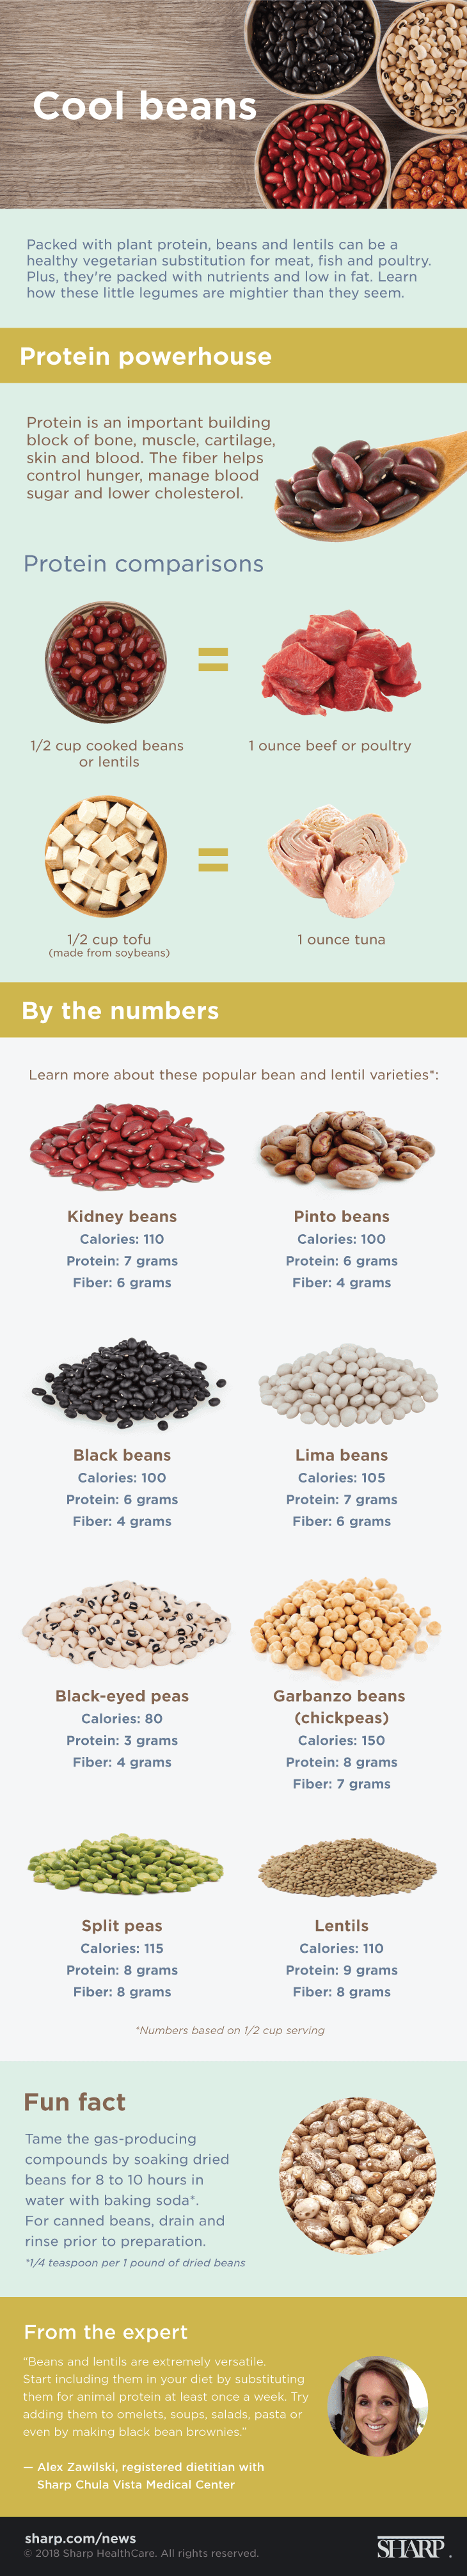 Cool beans infographic resize 051019 PNG